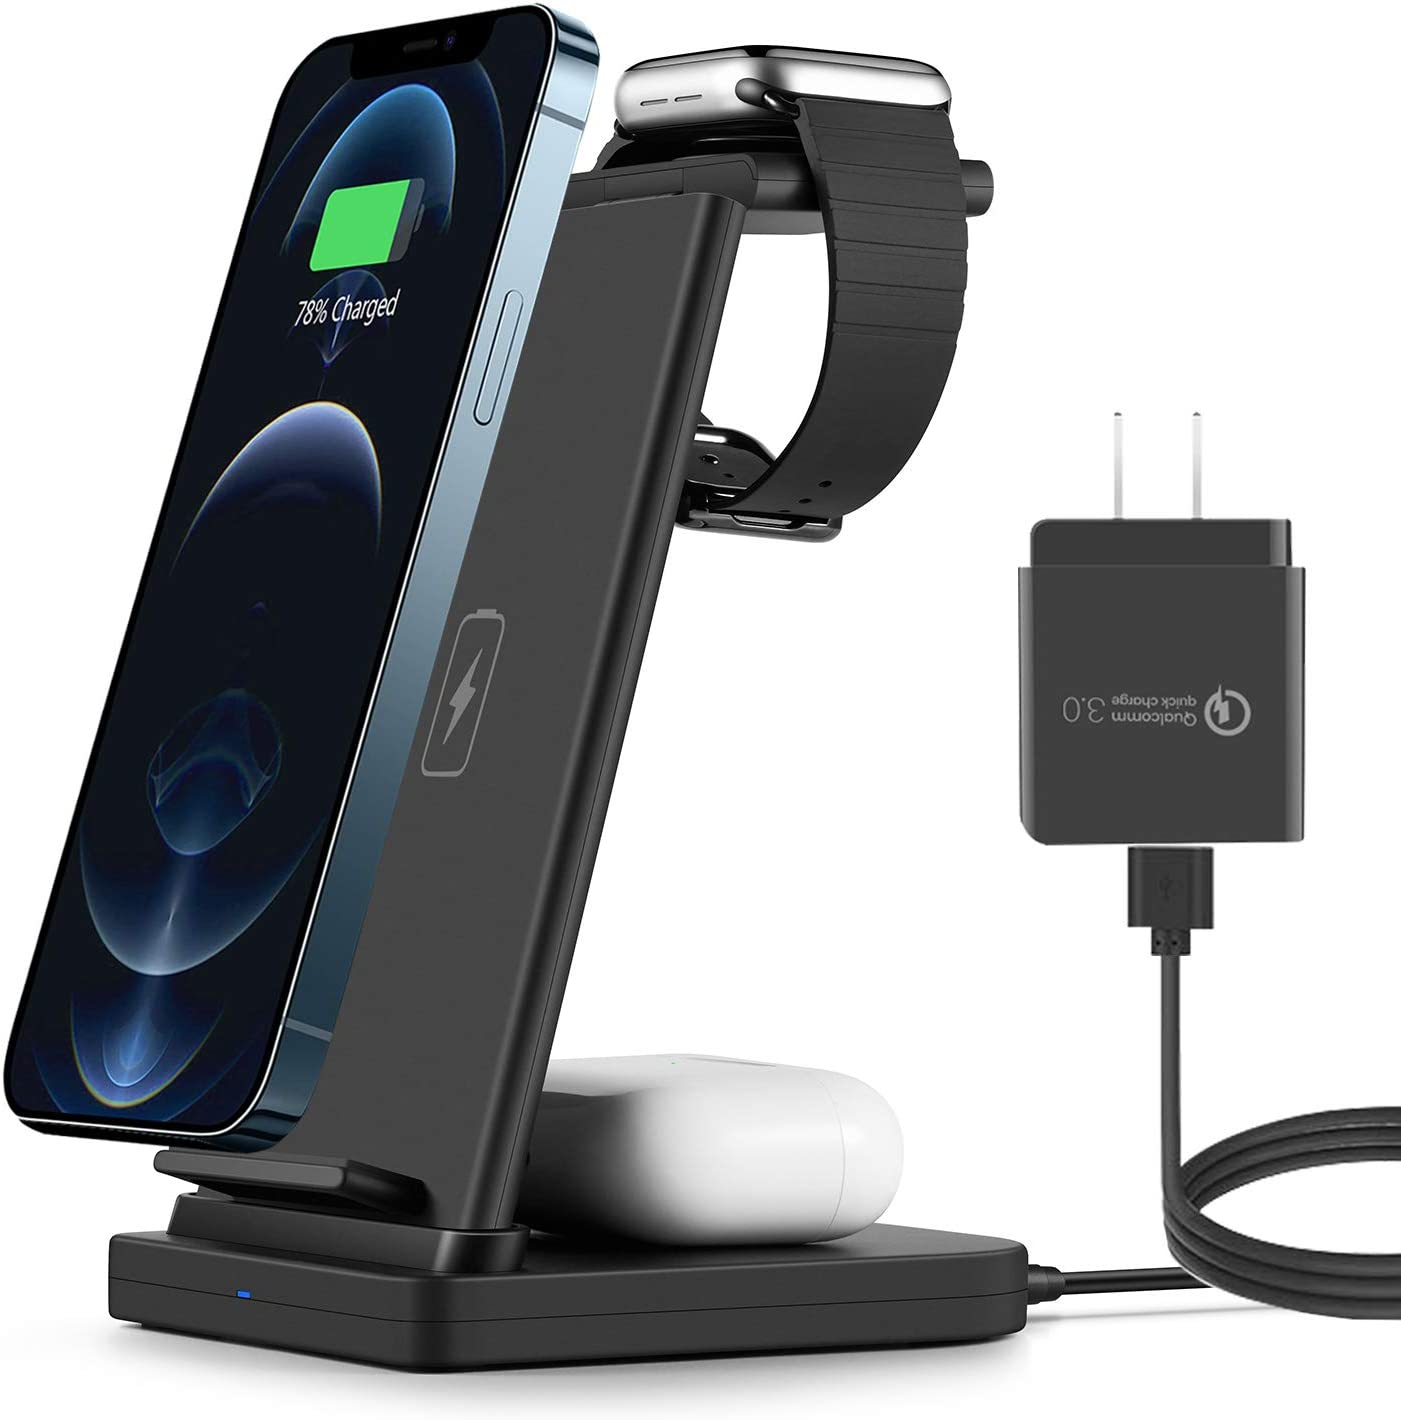 3 in 1 Wireless Charging Station for Apple Products Apple Charging Station iPhone and Apple Watch Charging Station Compatible for iPhone Series iWatch and Airpods Series with Quick Charge 3.0 Adapter.